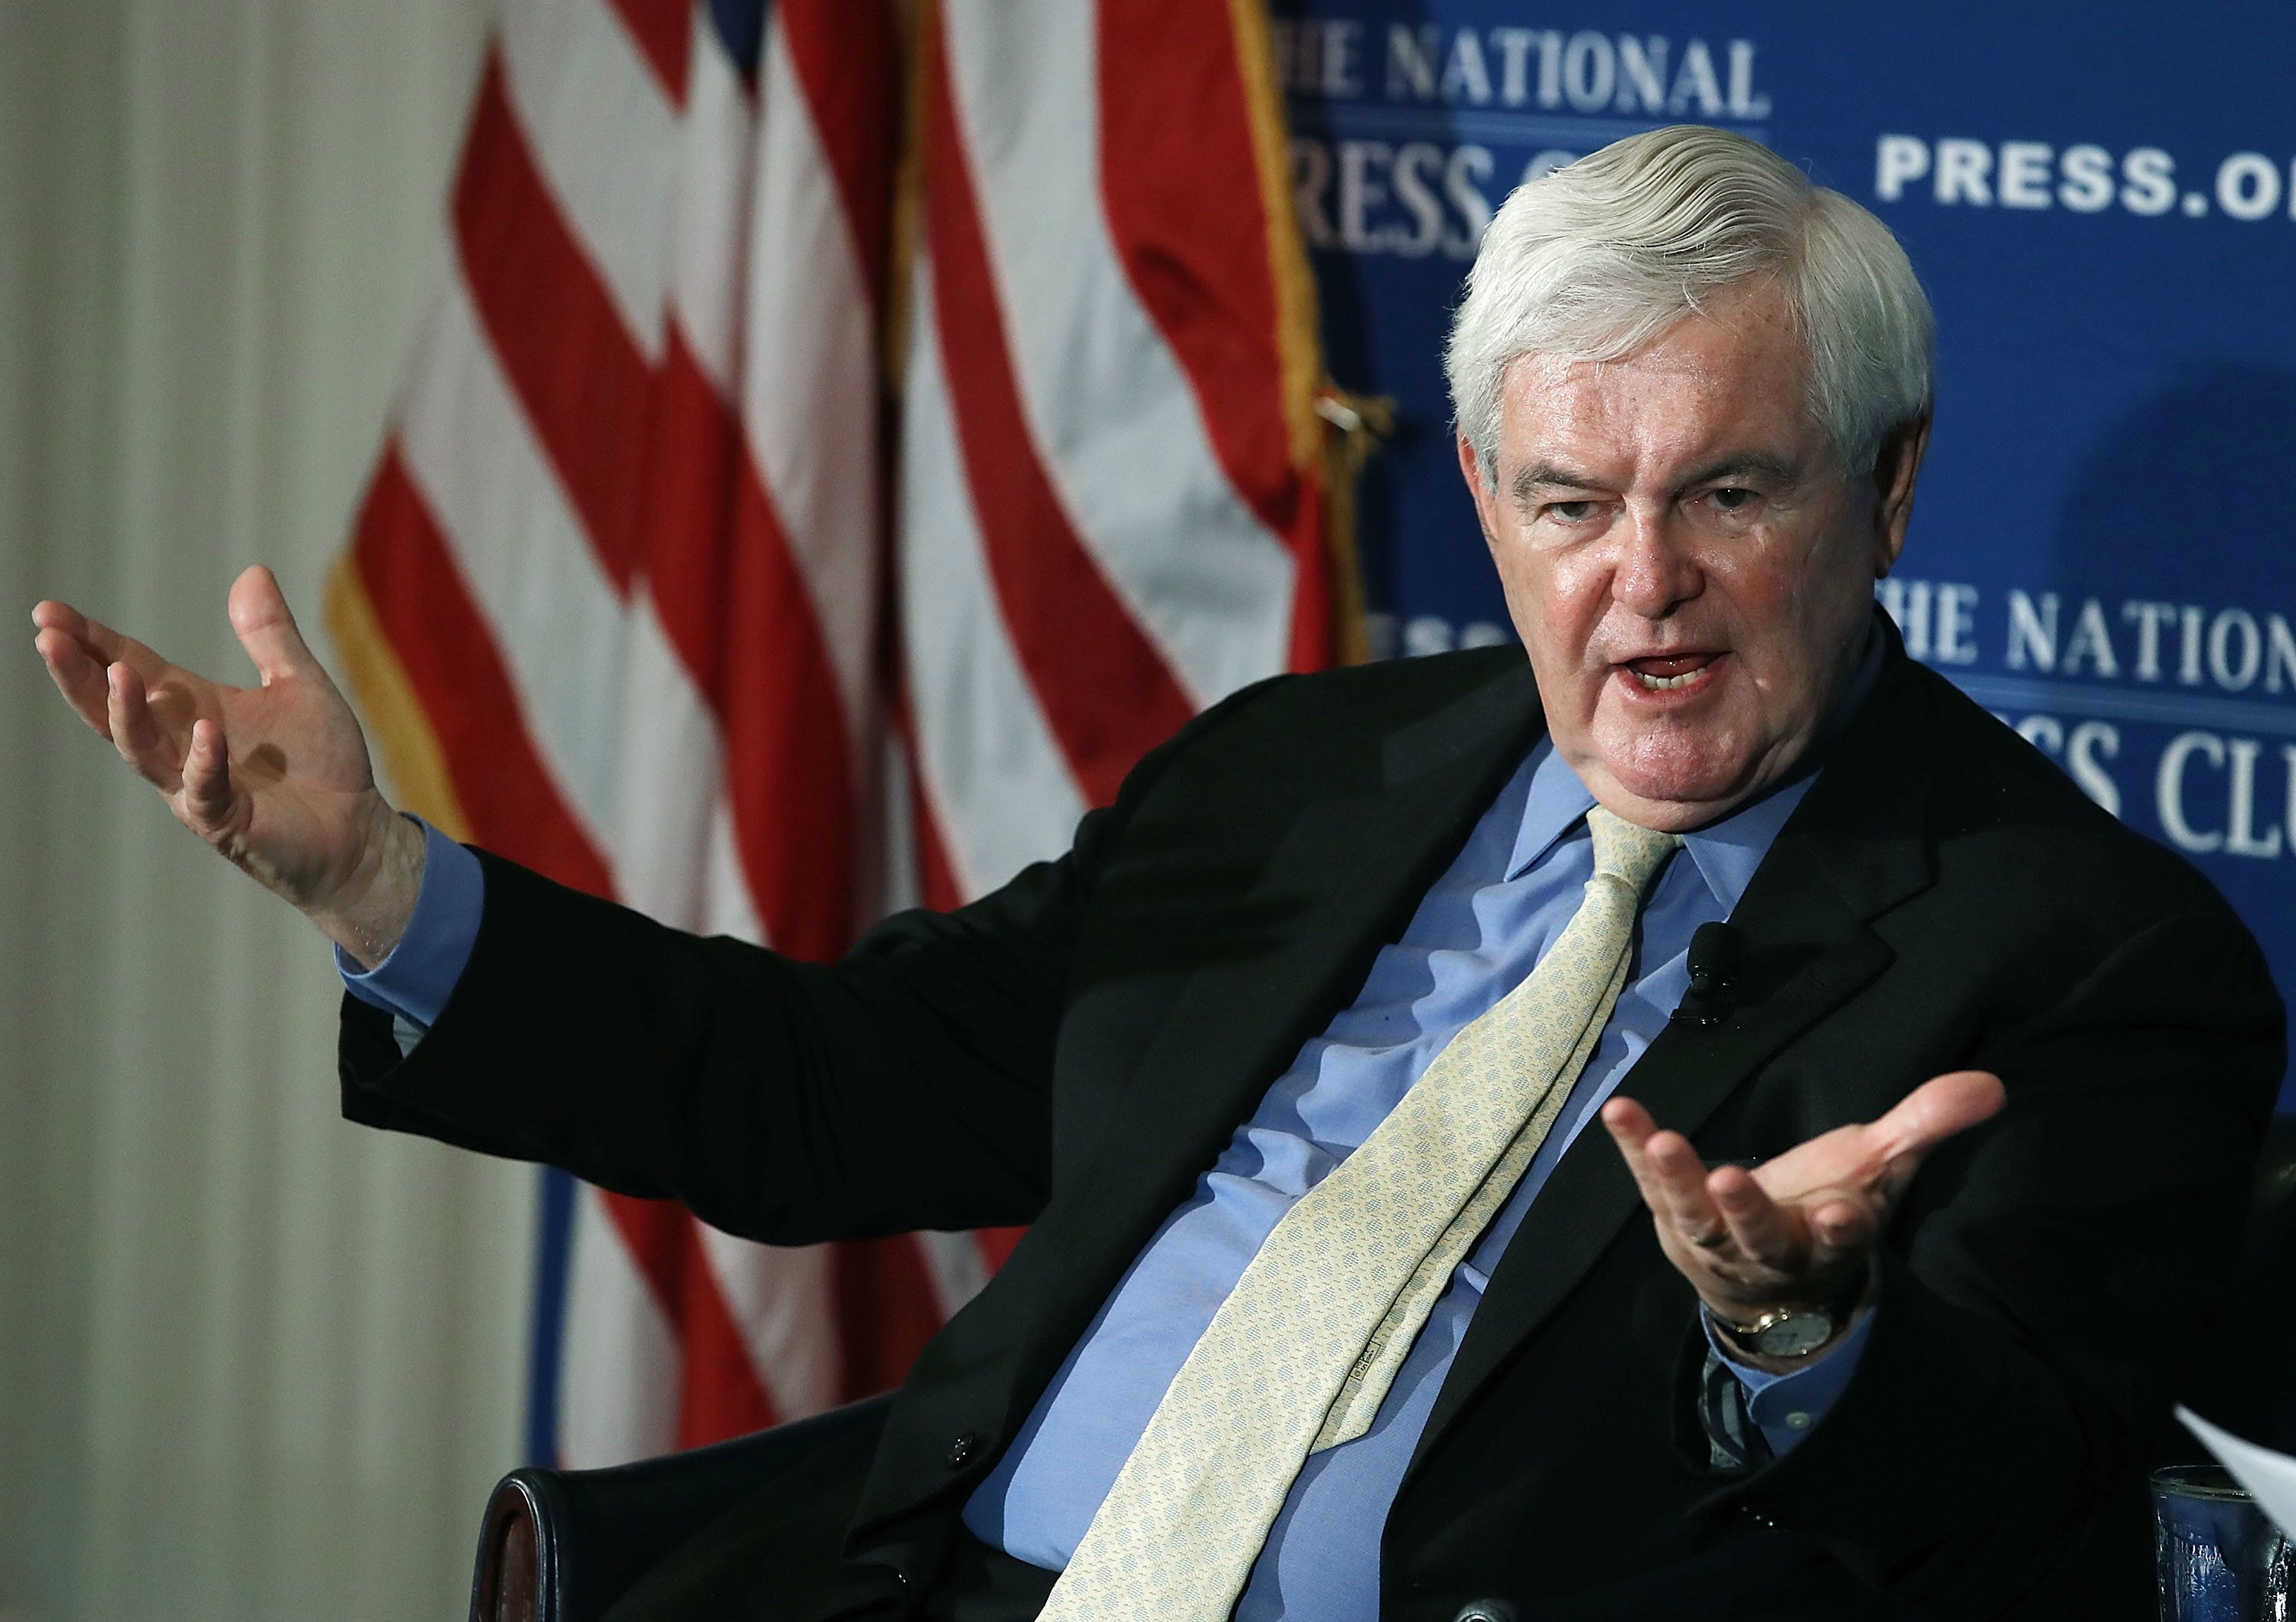 WASHINGTON, DC - JUNE 16:  Former House Speaker Newt Gingrich (R-GA), speaks about his book 'Understanding Trump' during a book discussion at the National Press Club, on June 16, 2017 in Washington, DC. Gingrich was an early endorser of candidate Trump during the presidential campaign. (Photo by Mark Wilson/Getty Images)